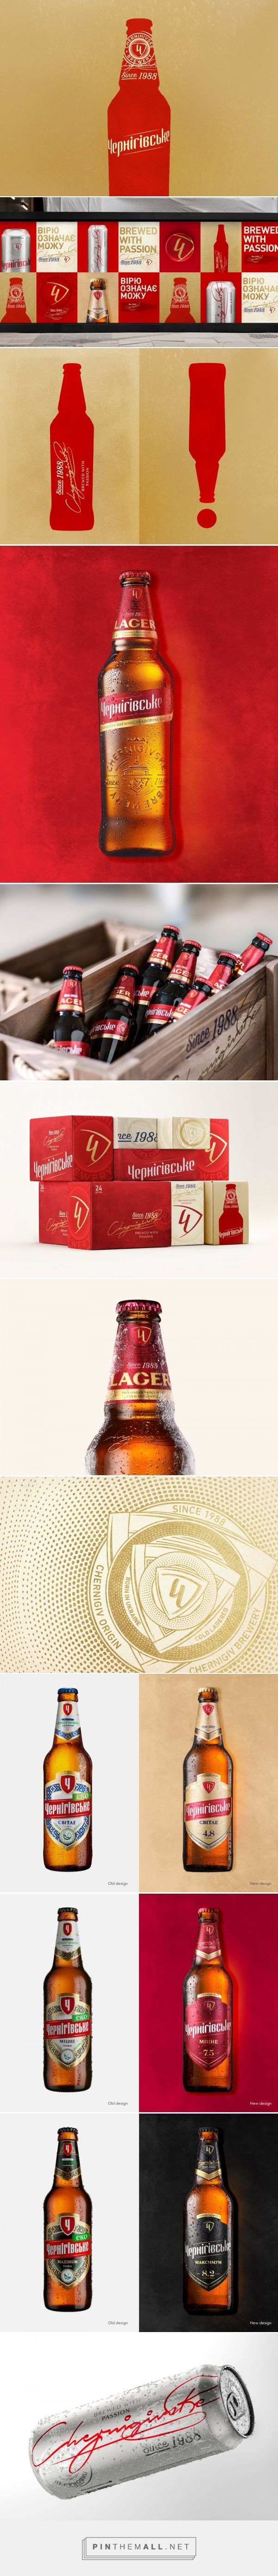 Chernigivske beer packaging design by Reynolds and Reyner - http://www.packagingoftheworld.com/2017/12/chernigivske.html